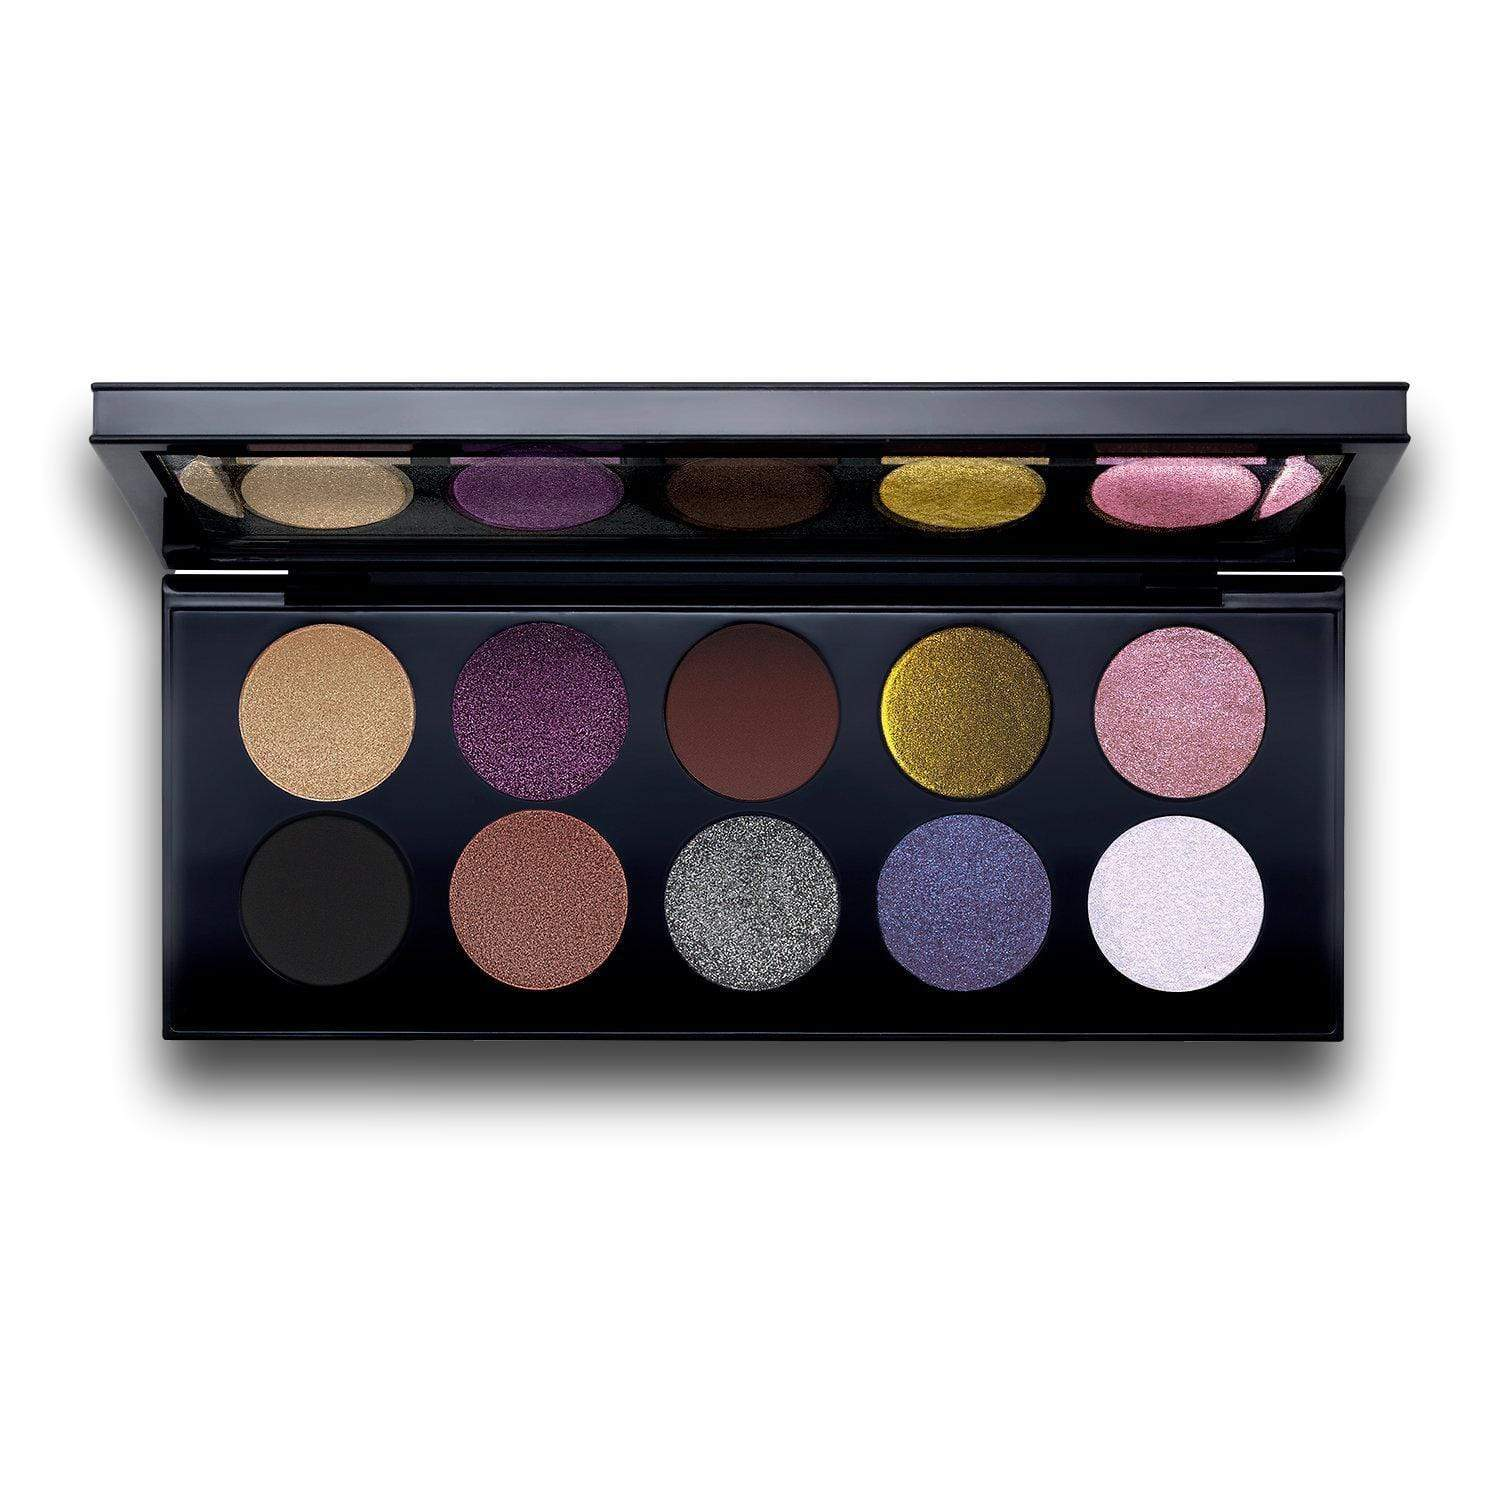 PAT MCGRATH LABS eyeshadow palette PAT MCGRATH LABS Mothership III Eyeshadow Palette - Subversive